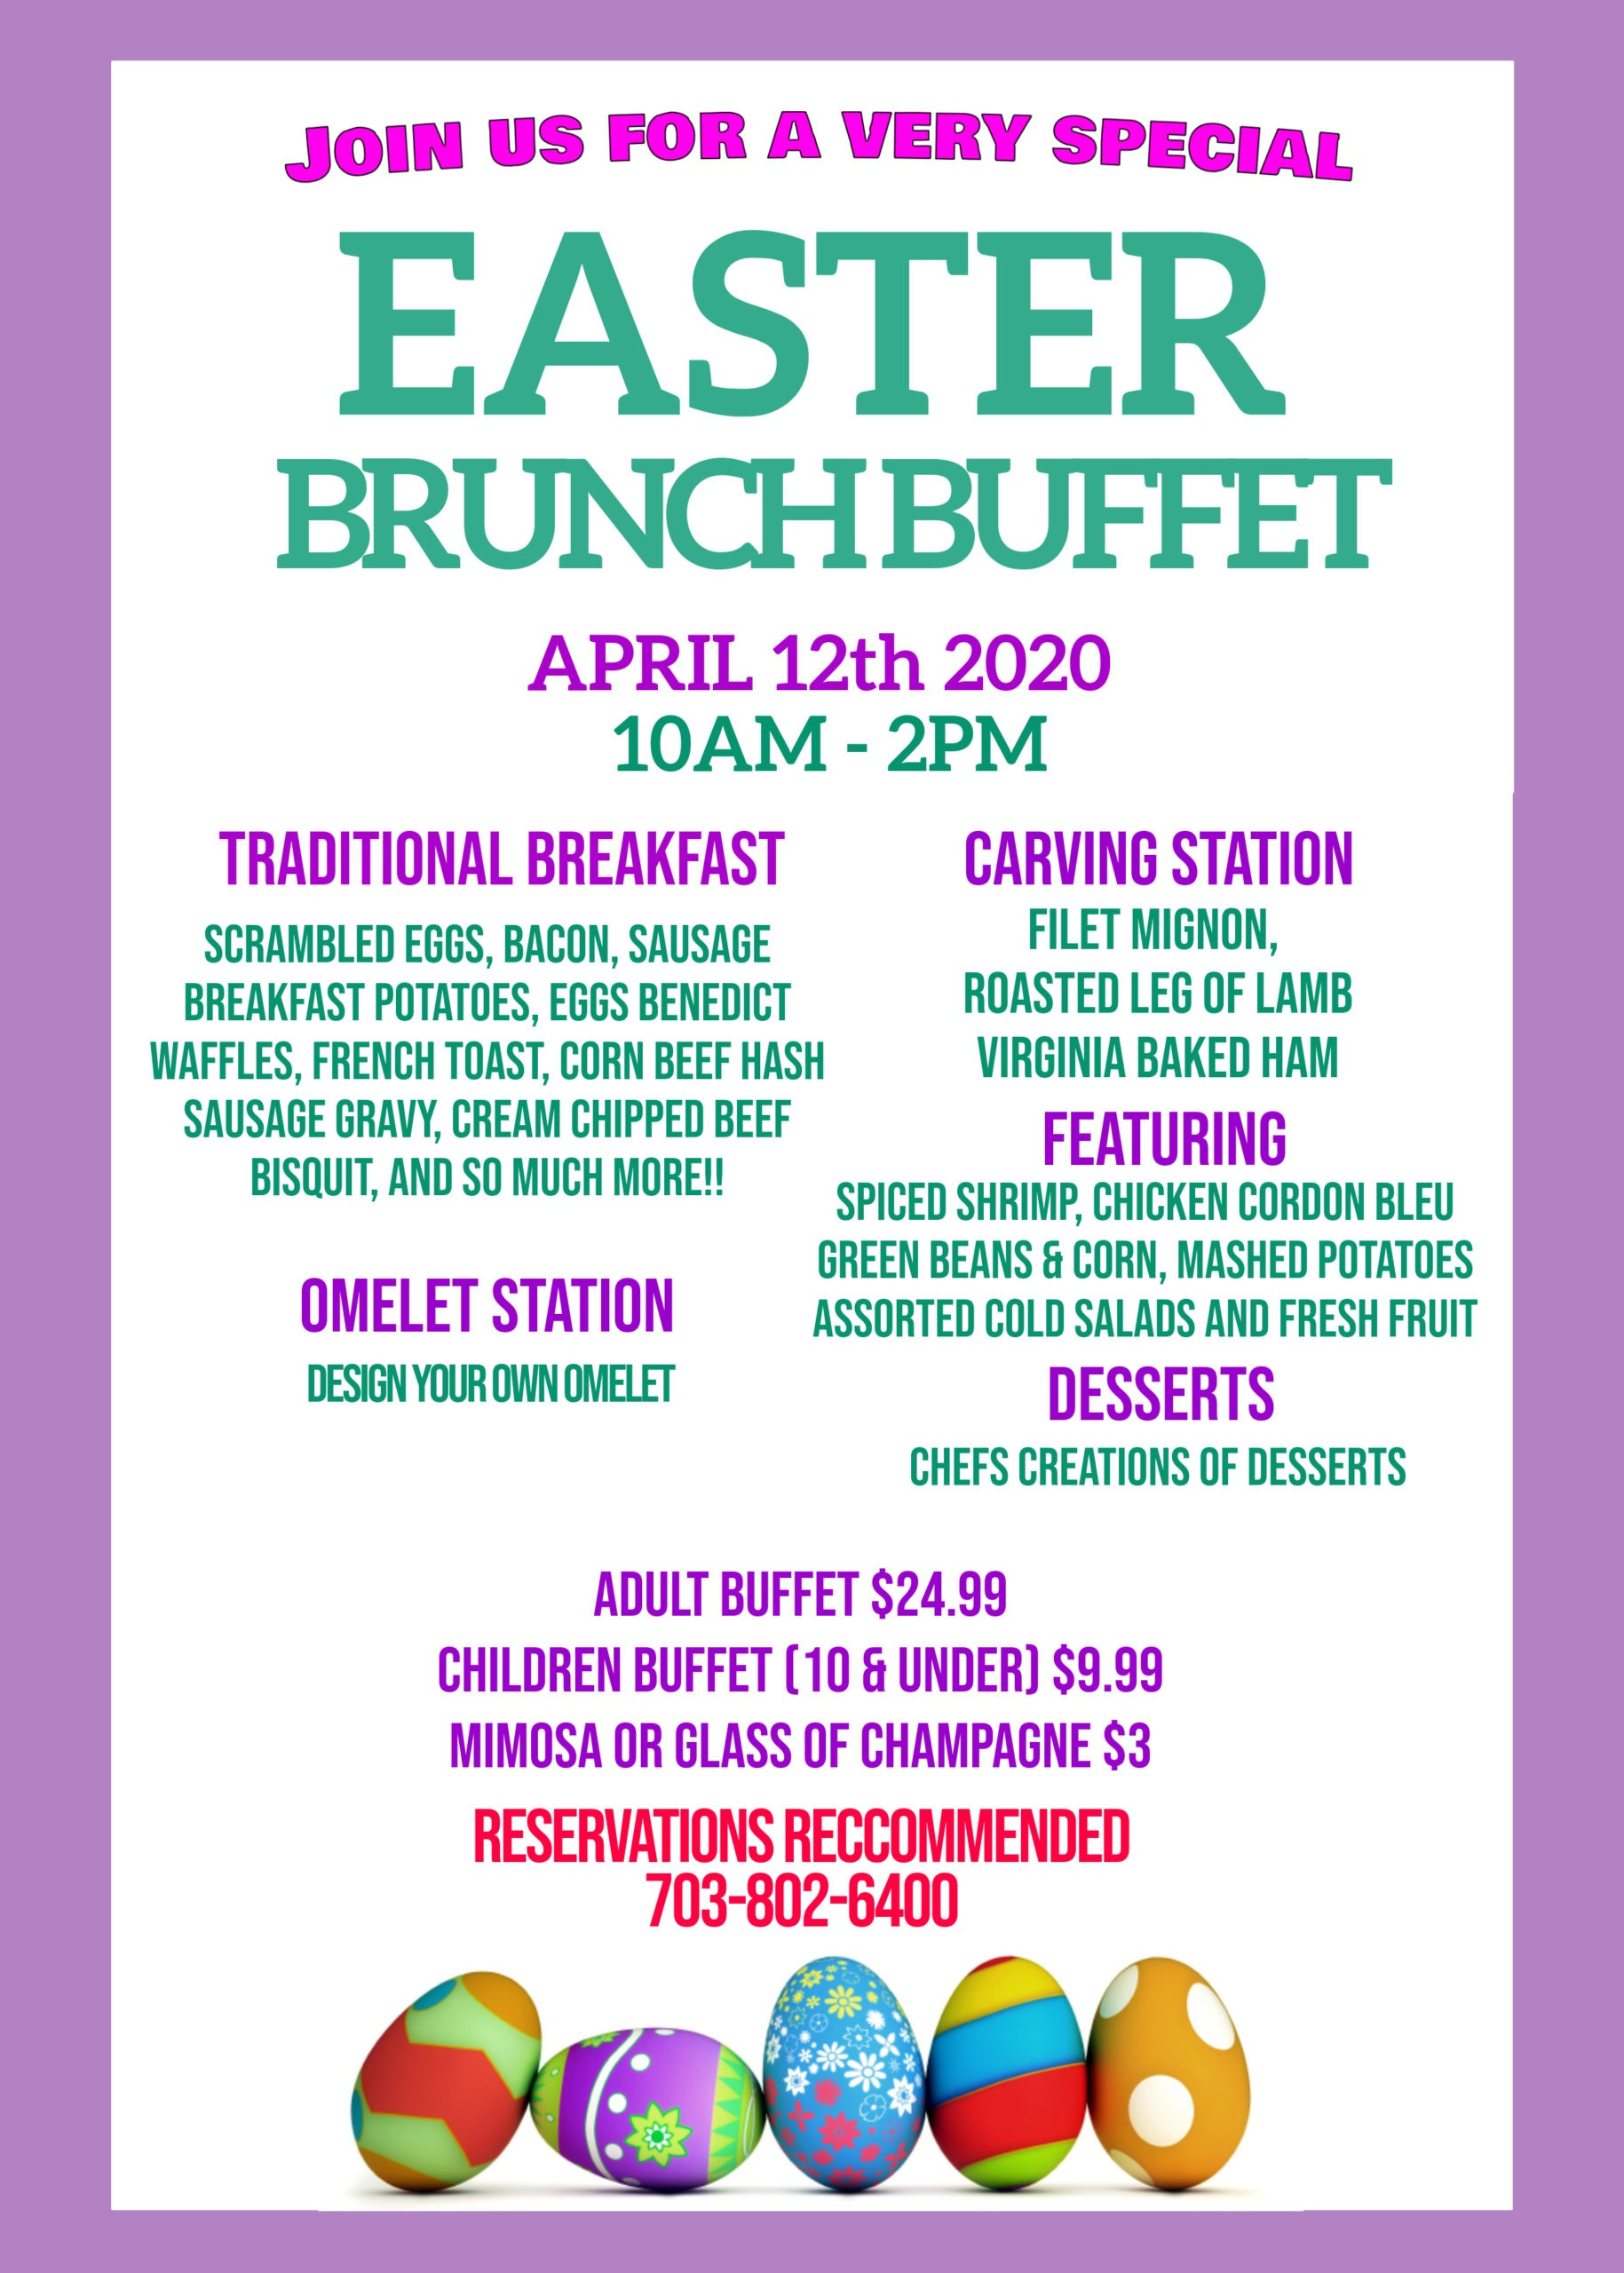 Easter Brunch Buffet 2020 | Backyard Grill, Chantilly